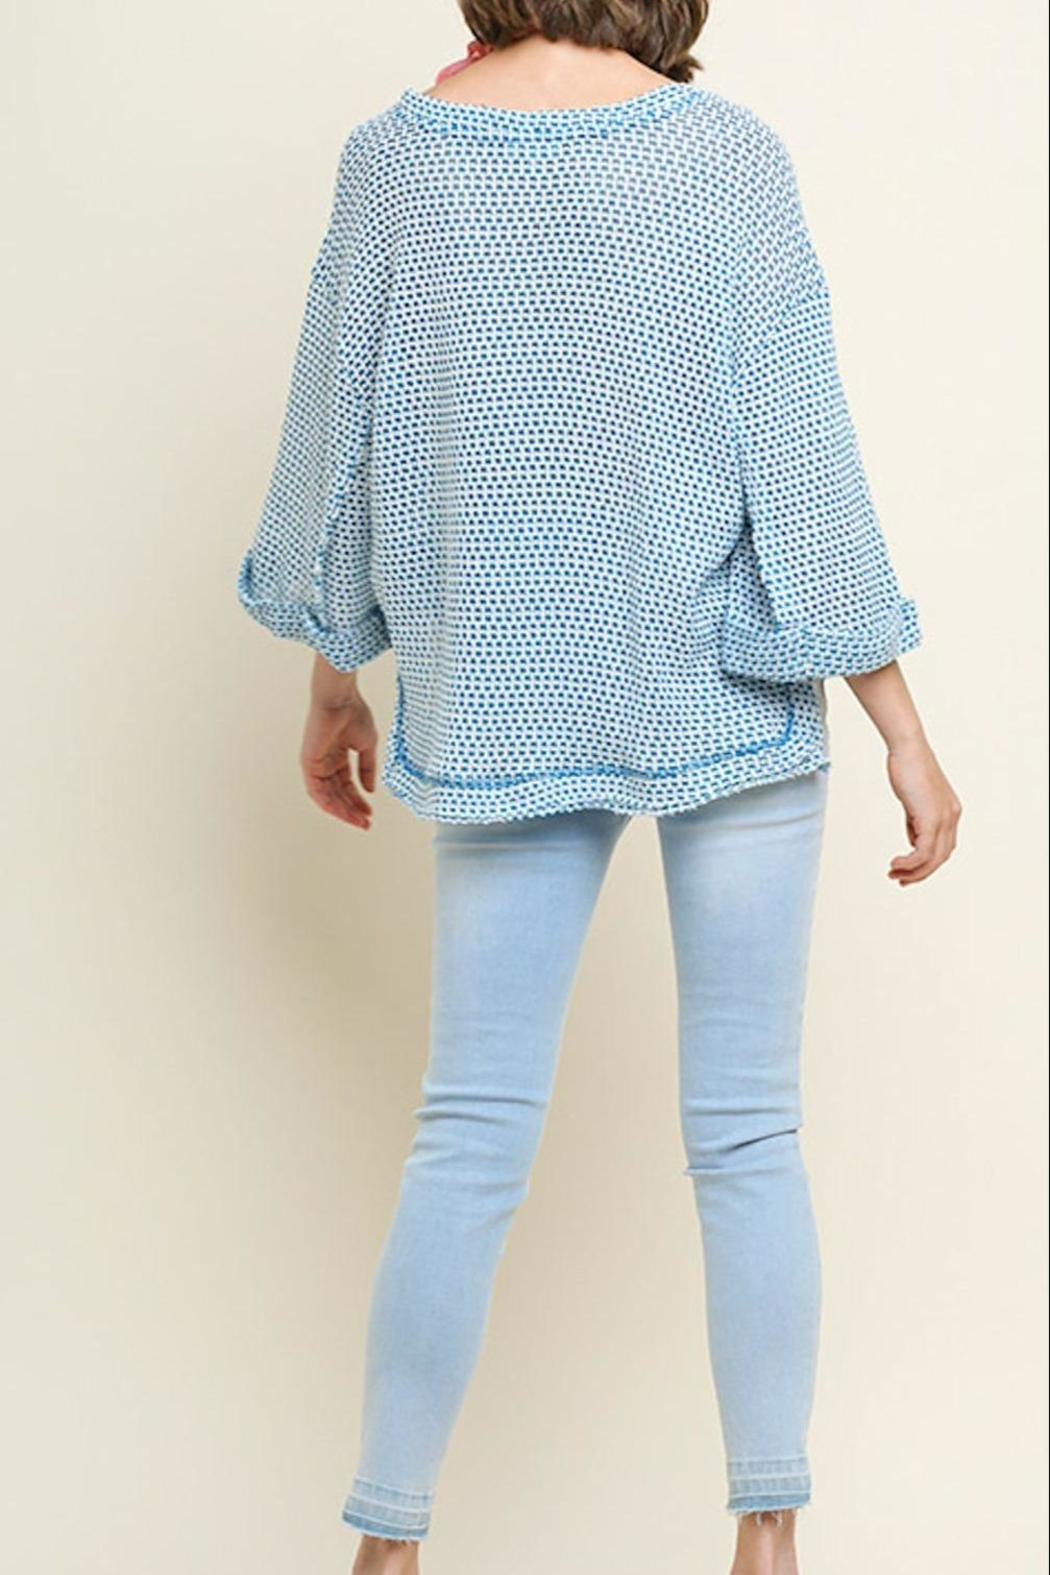 Umgee USA High-Low Waffle-Knit Top - Front Full Image